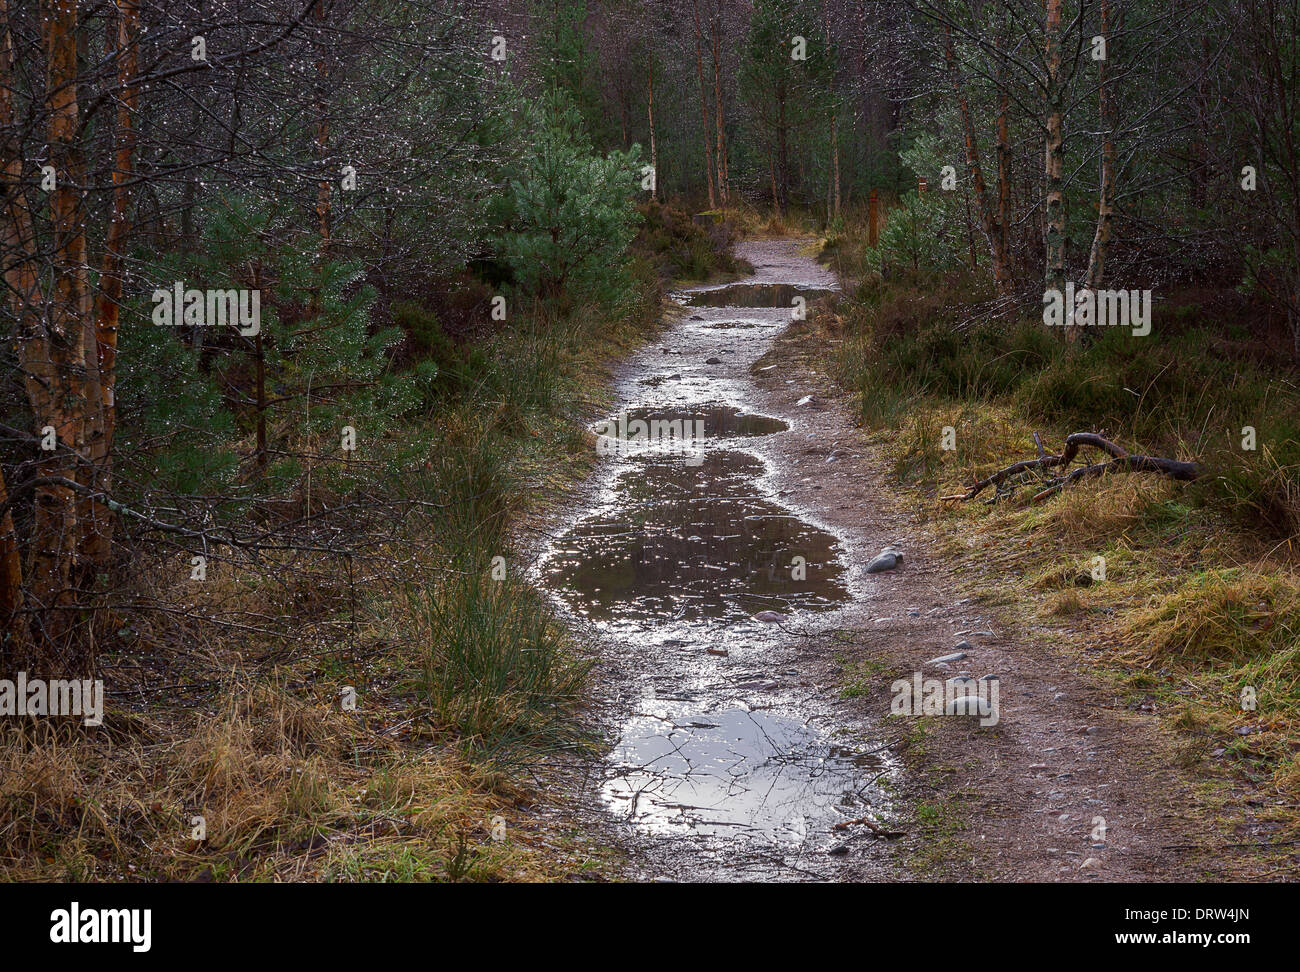 Forest path with rain puddles. Glenmore Forest Park, Cairngorms National Park, Scotland. - Stock Image